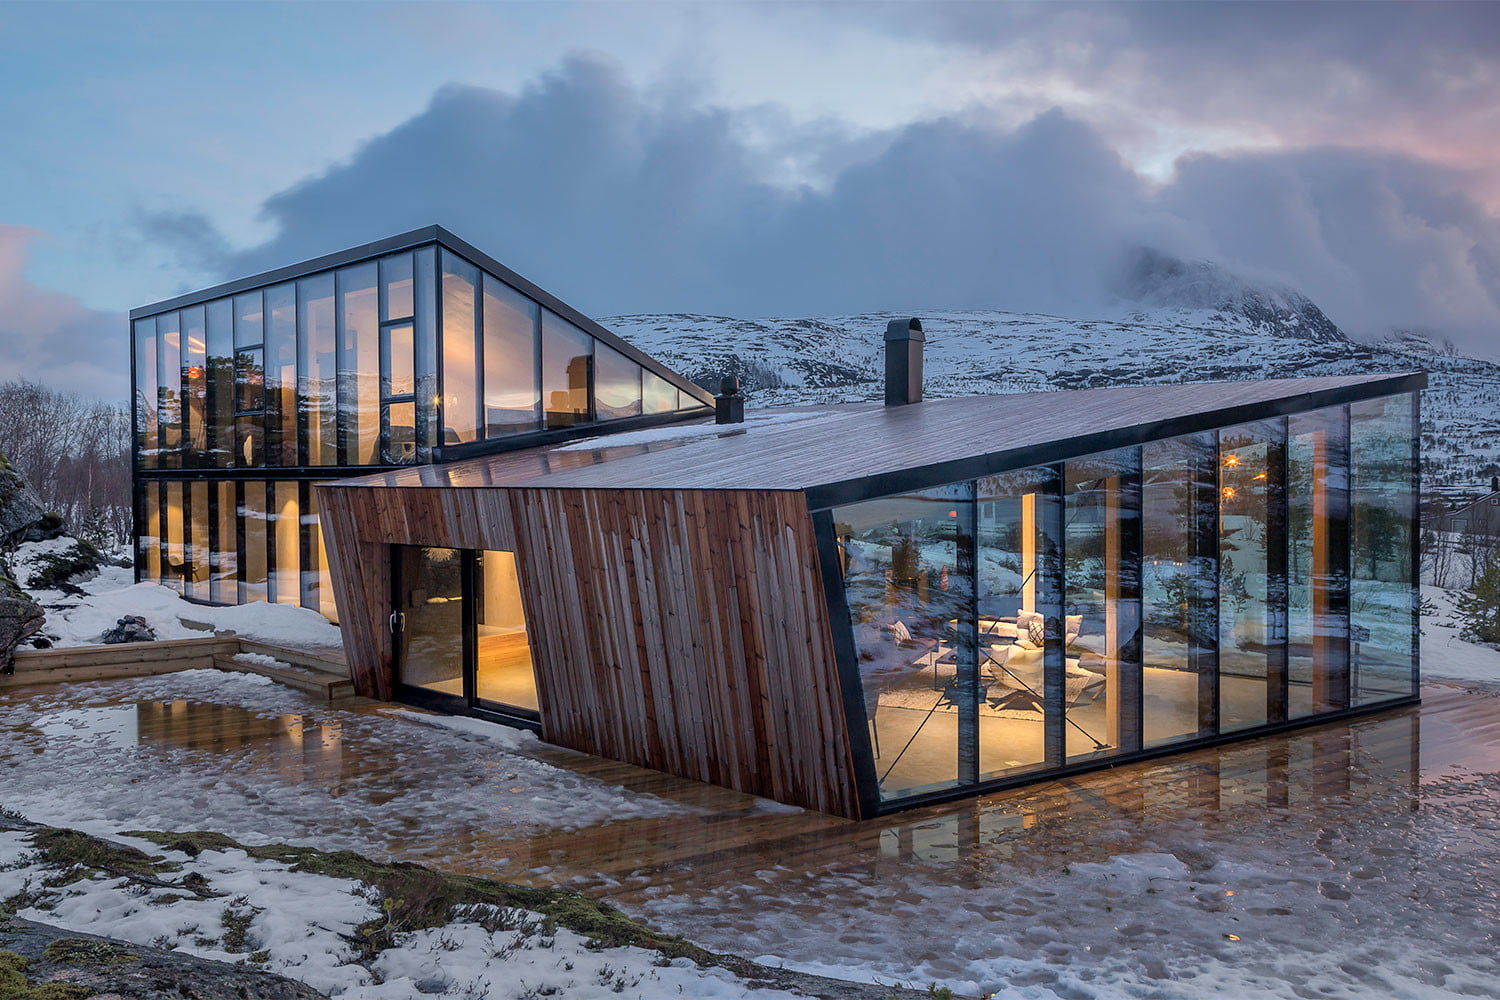 efjord cabin glass house norway snorre stinessen architecture 3